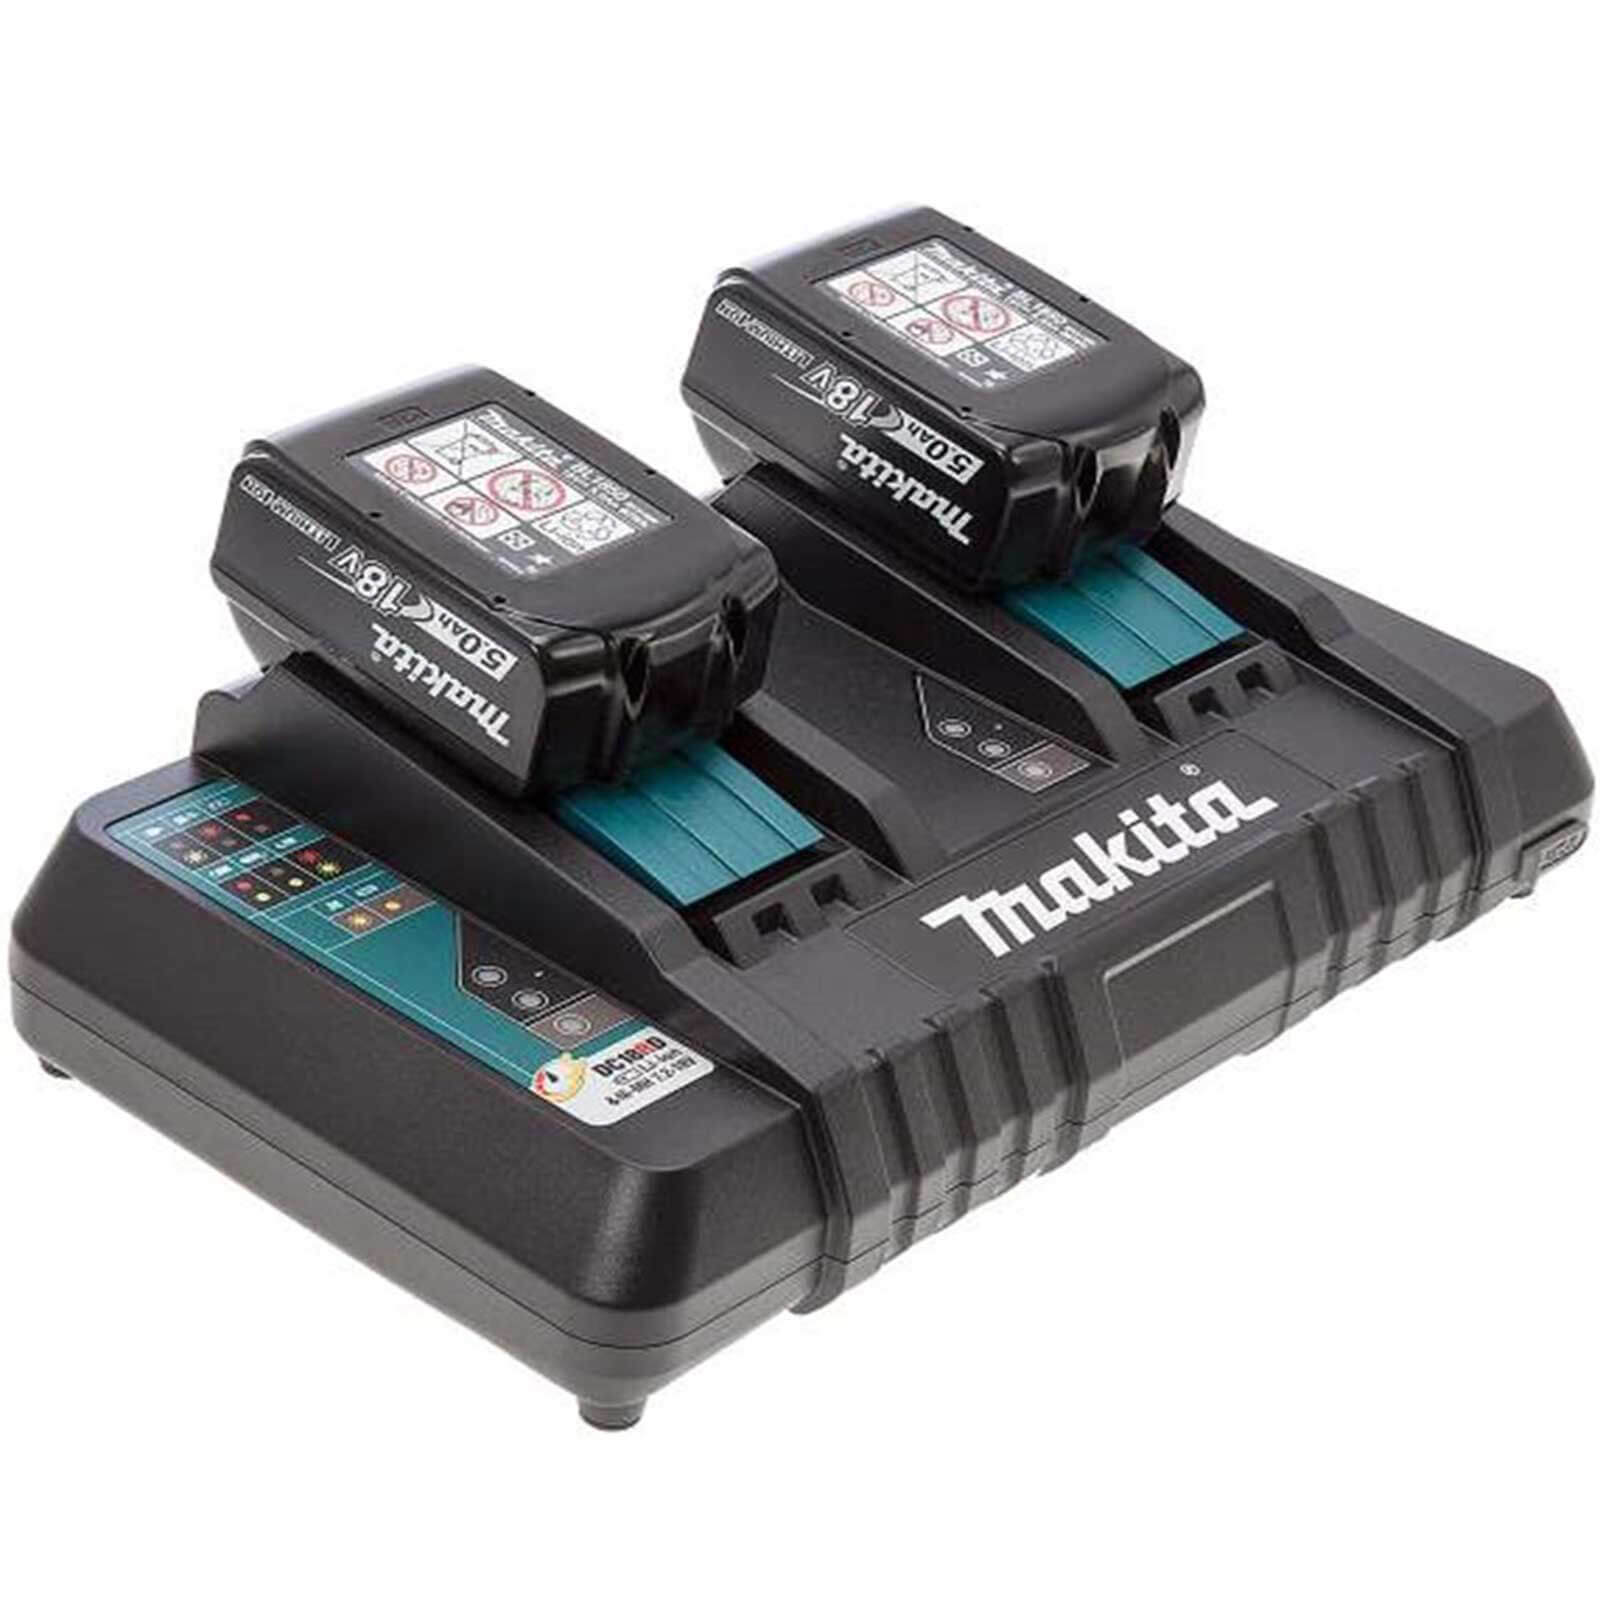 Image of Makita 18v Twin Charger and 2 Li-ion Batteries 5 Amp